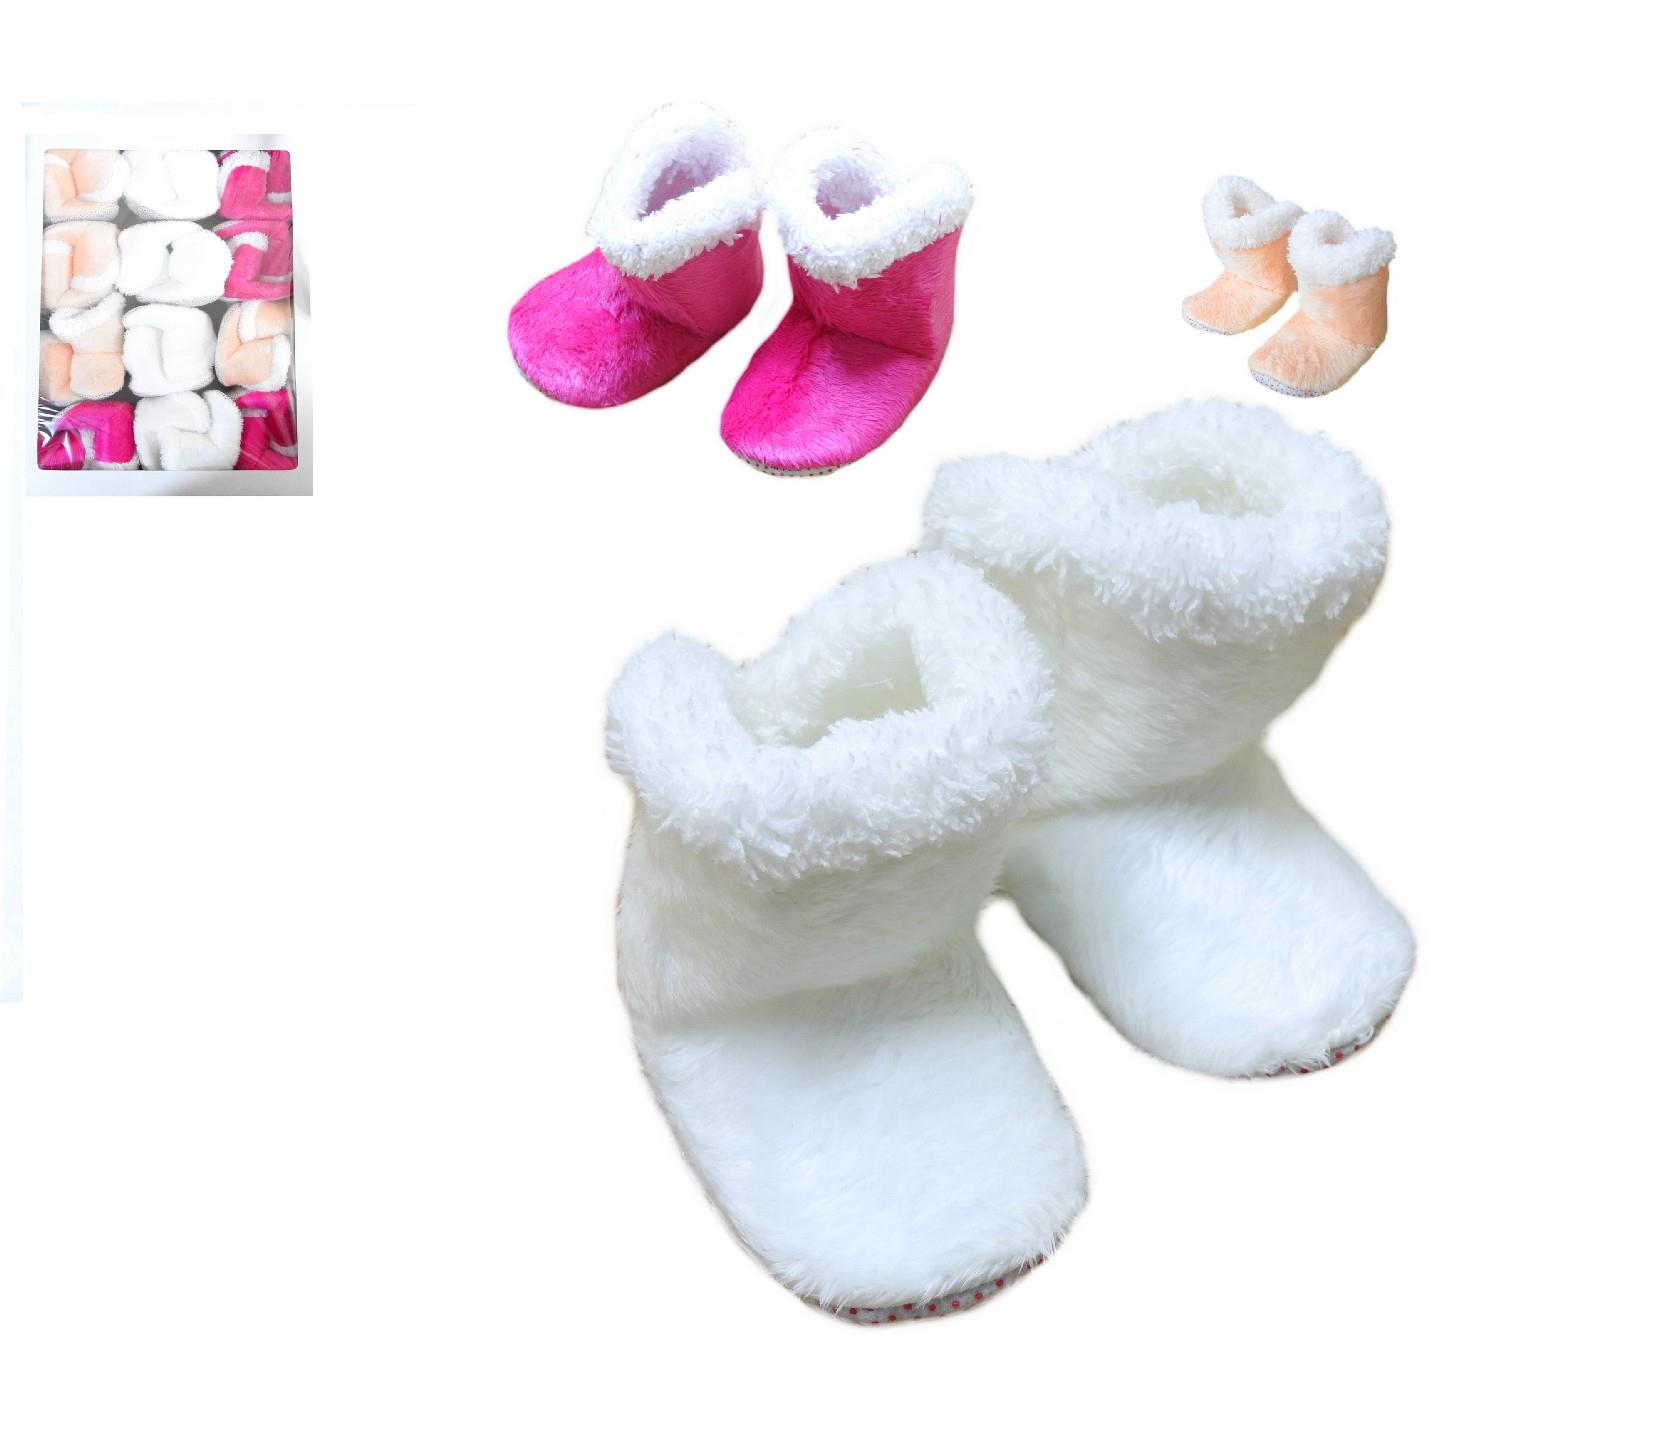 021 Wholesale faux shearling booties 12 pieces